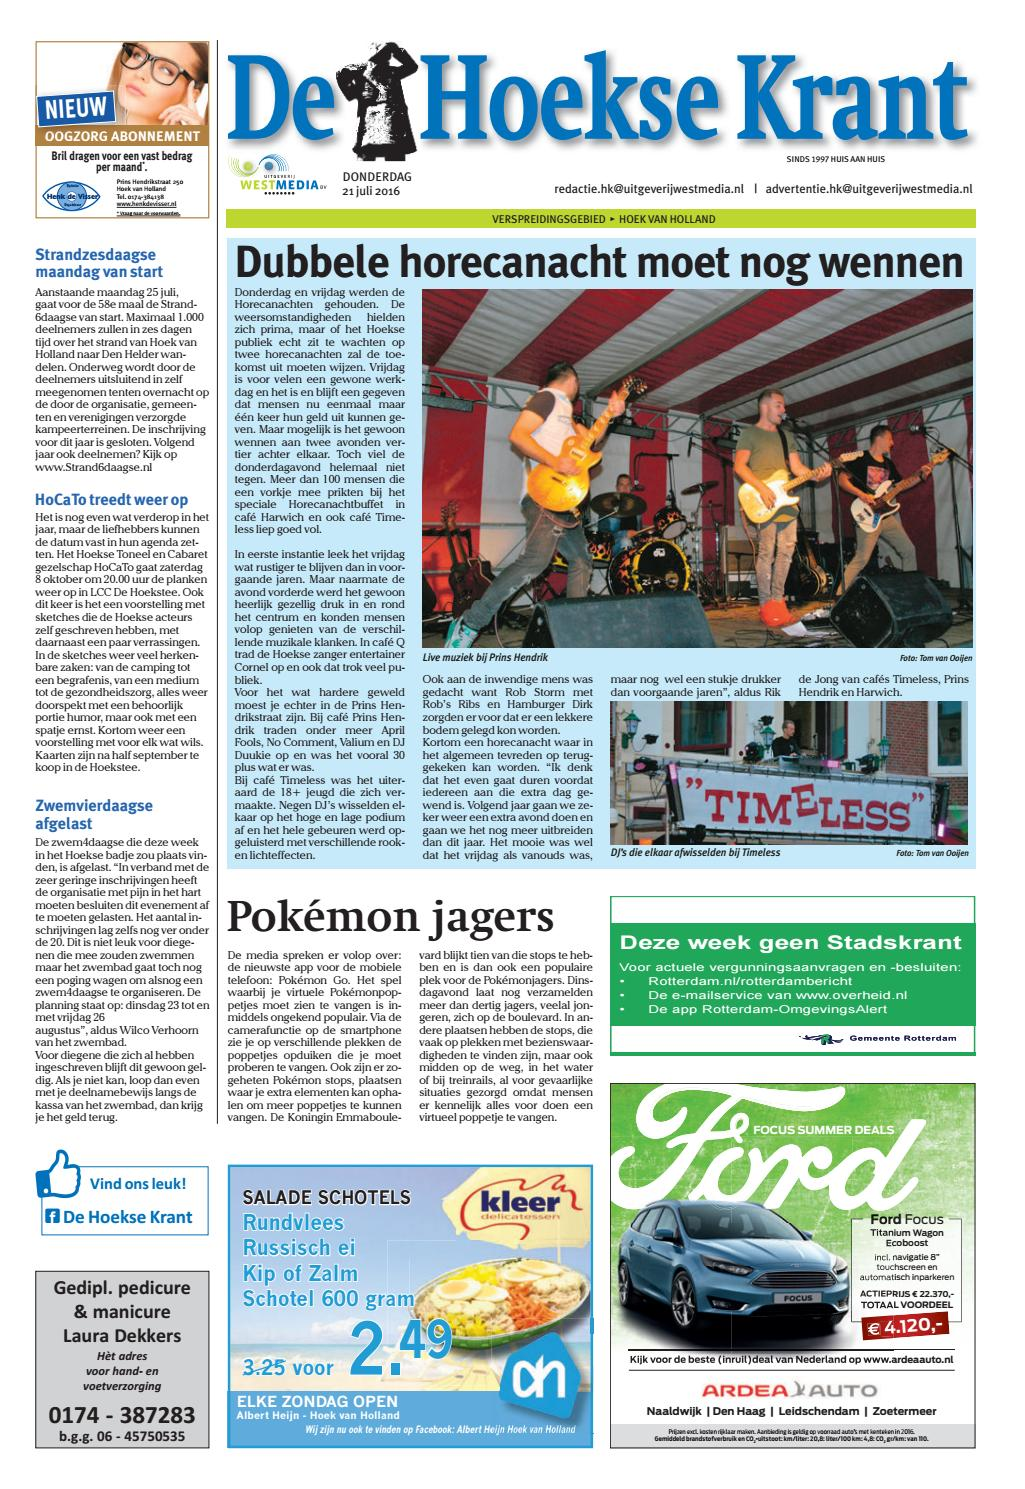 De Viersprong Pijnacker Zwembad Hk 2016 07 21 By Wl Media Issuu